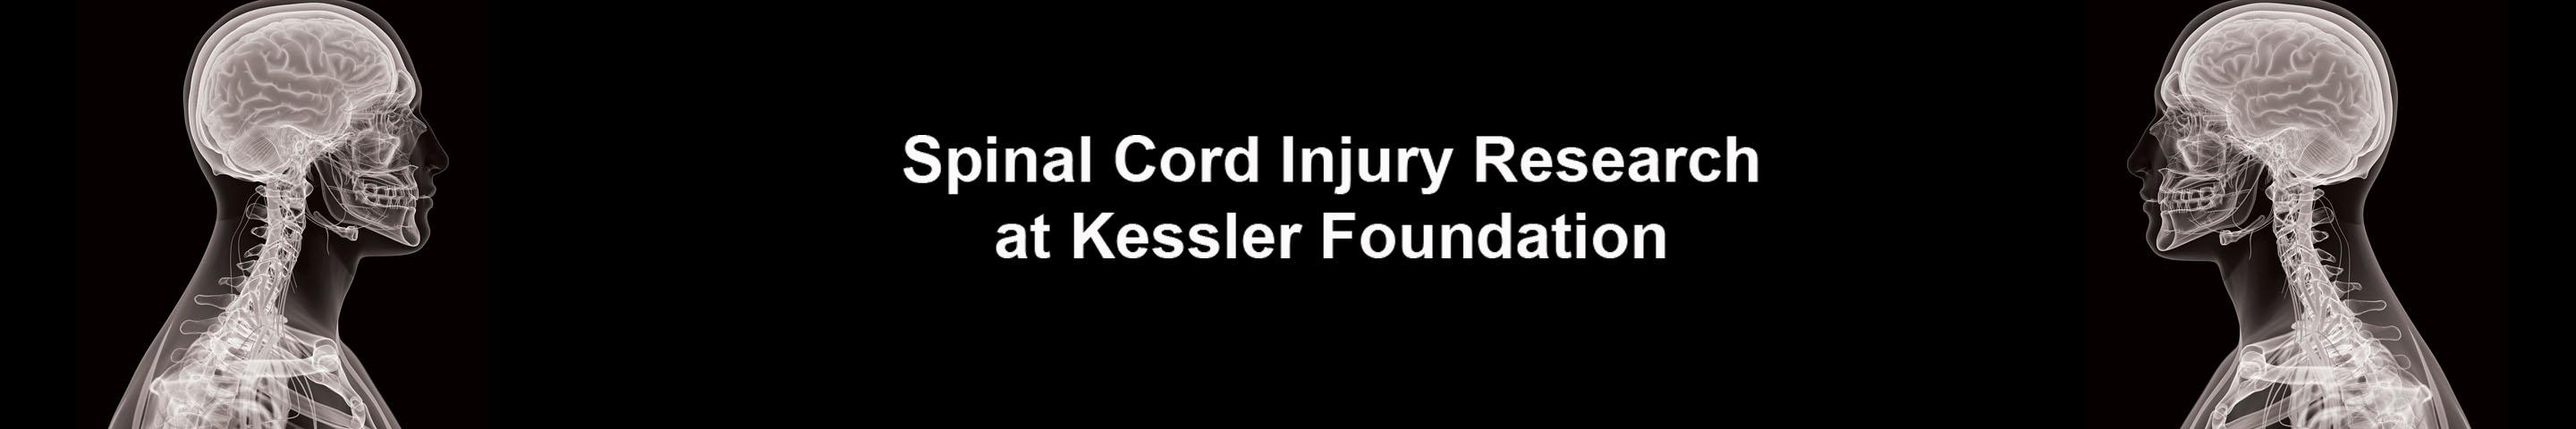 Spinal Cord Injury Research banner